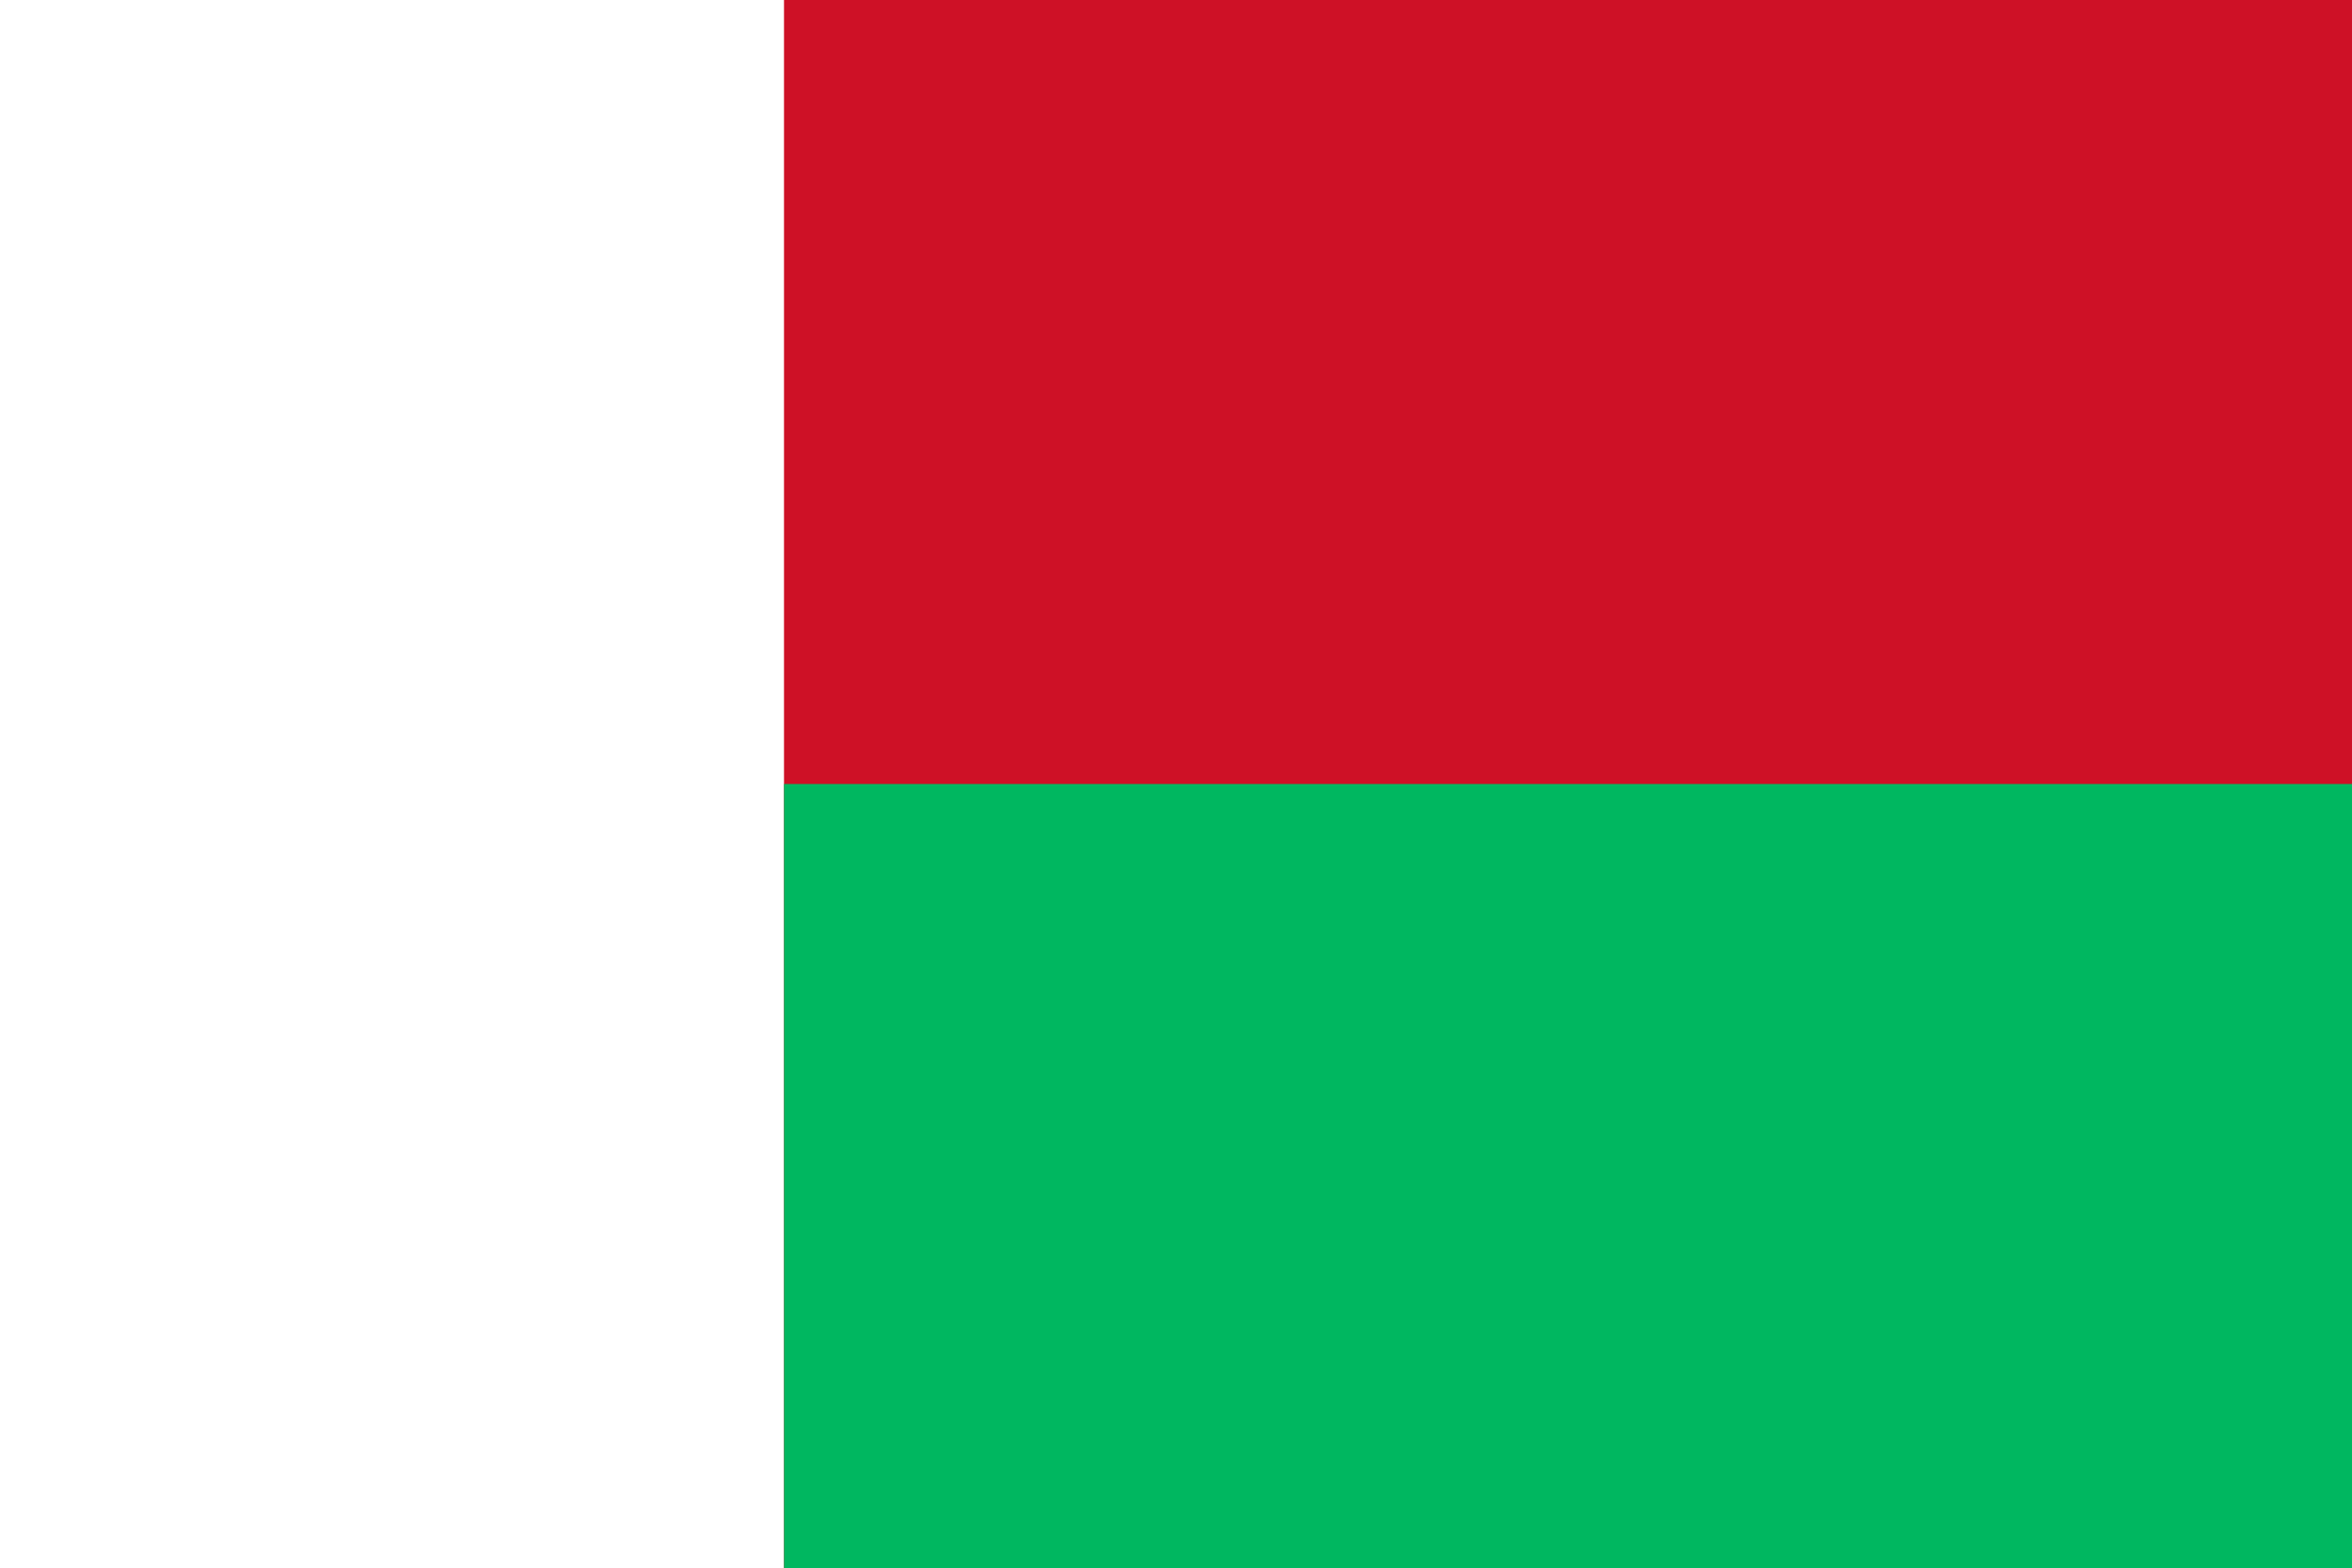 Flag of Madagascar